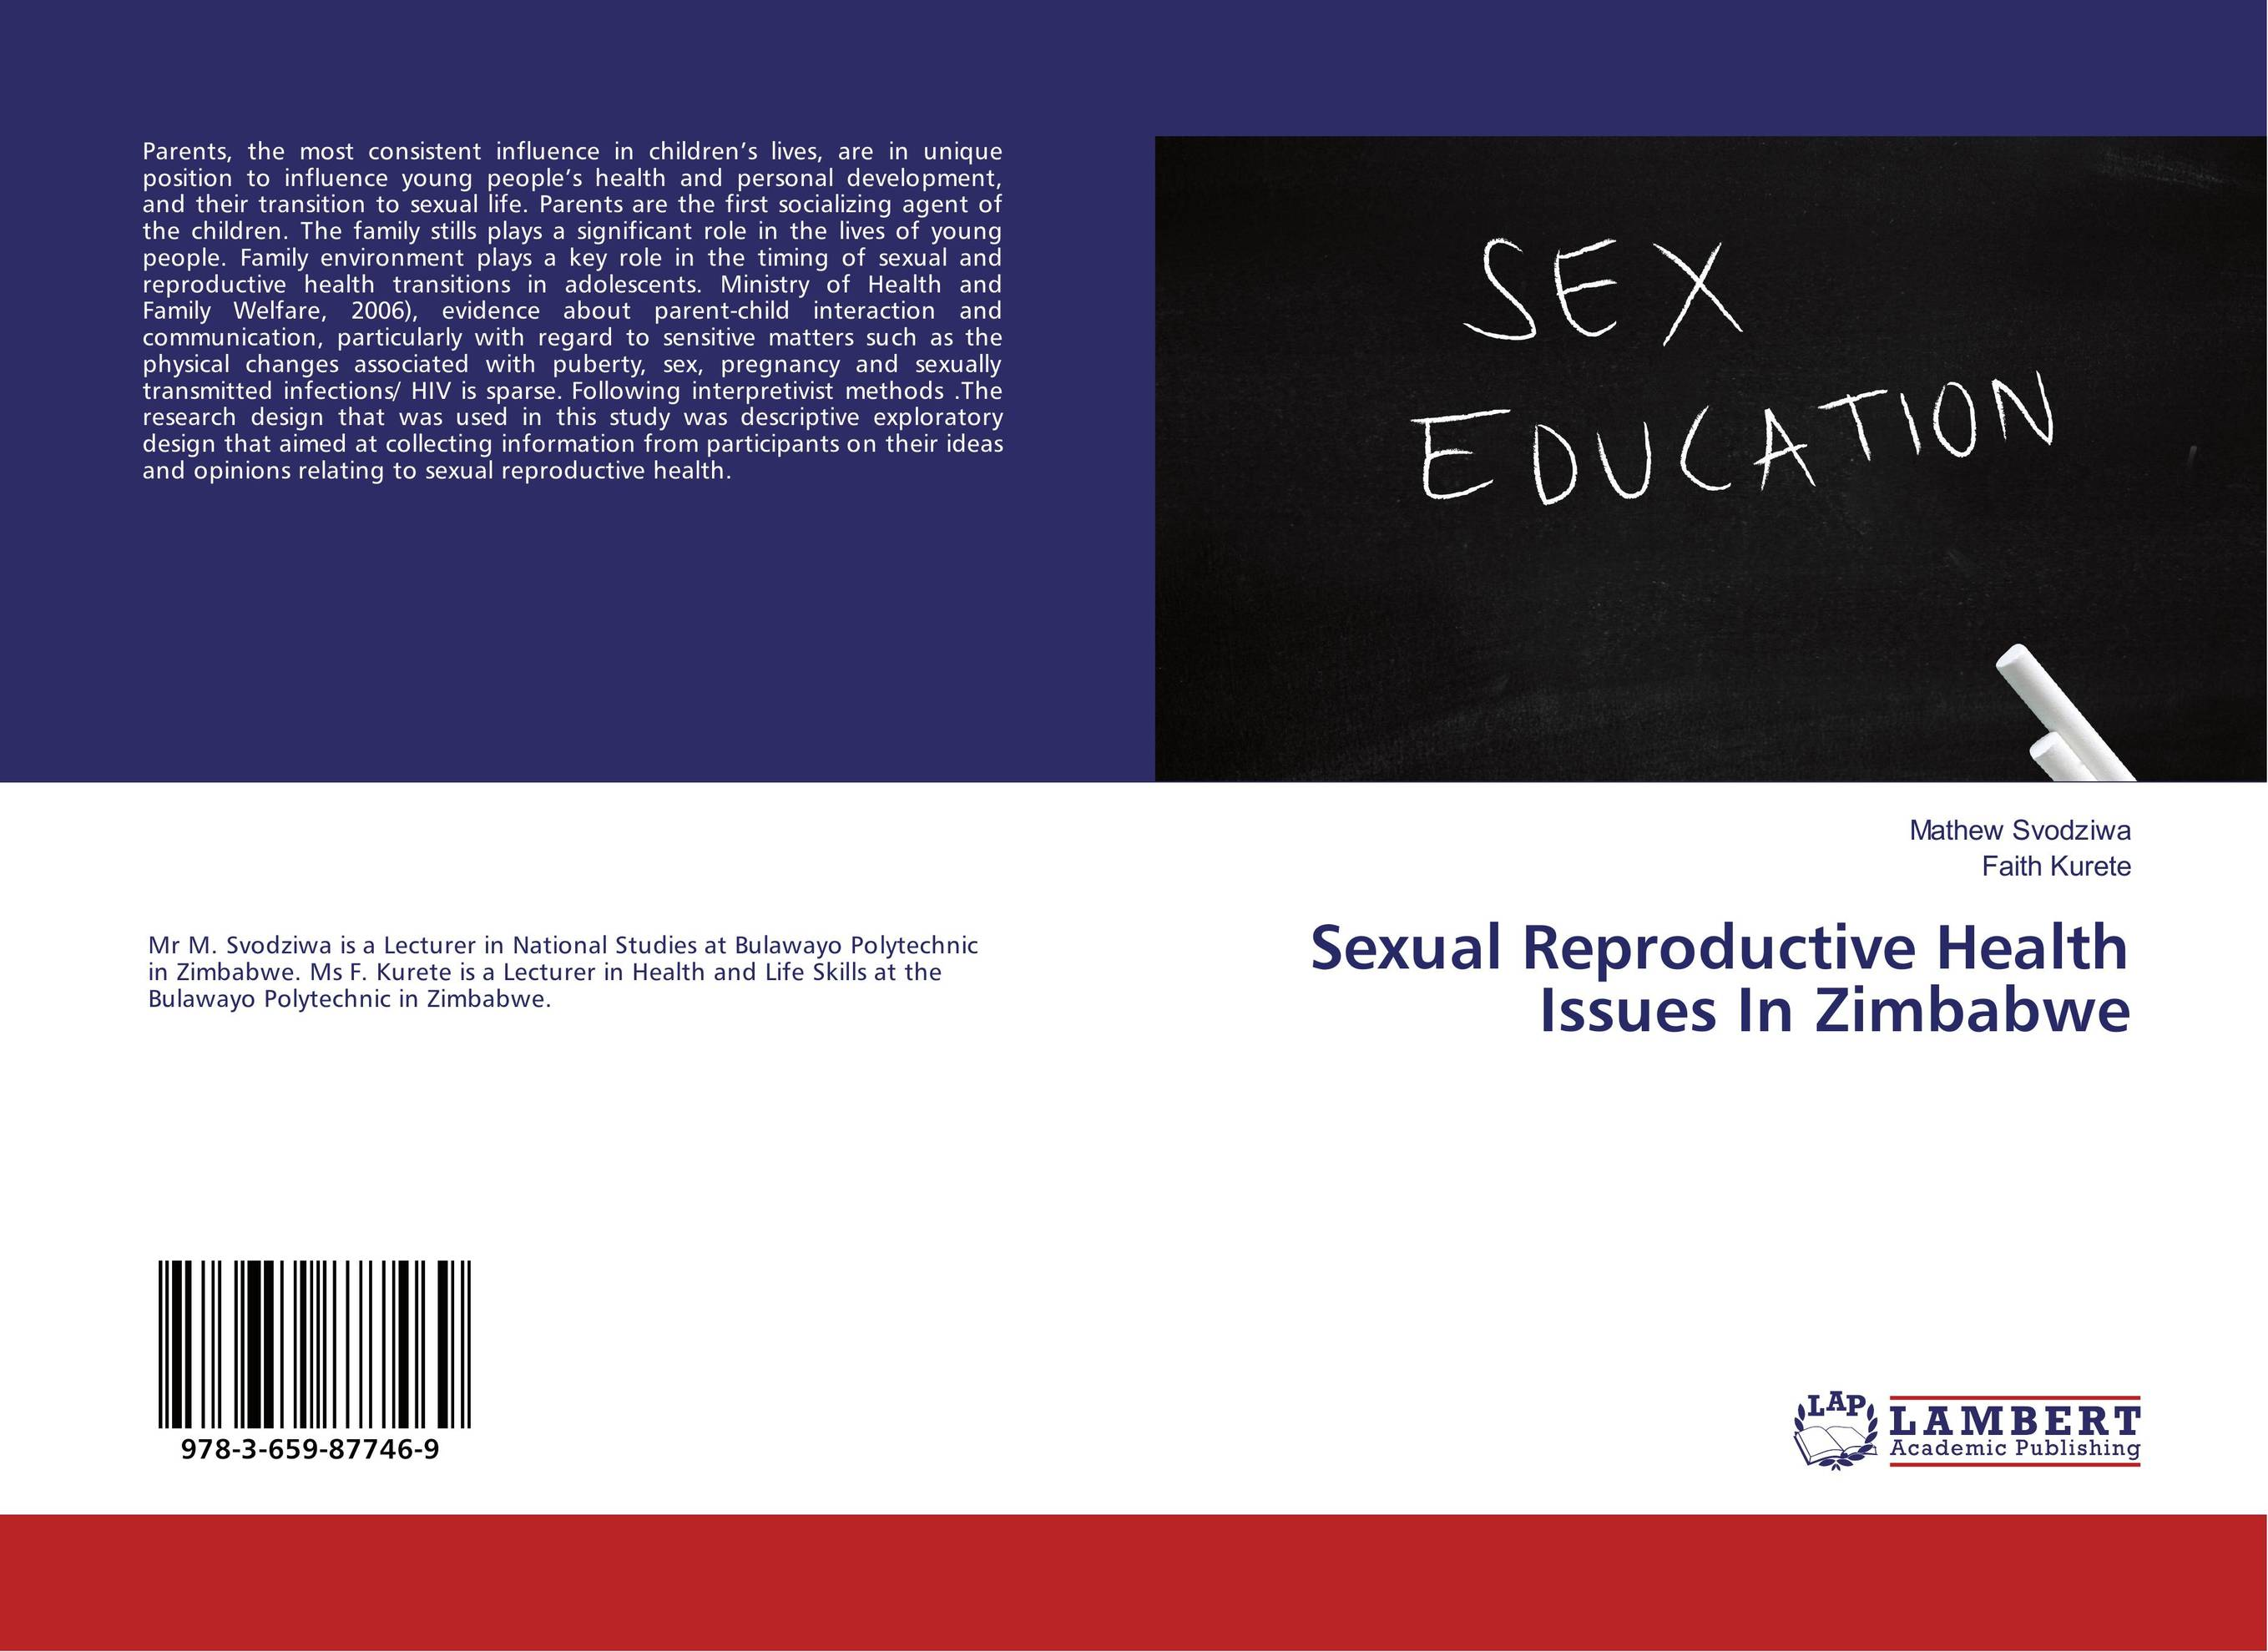 Sexual Reproductive Health Issues In Zimbabwe